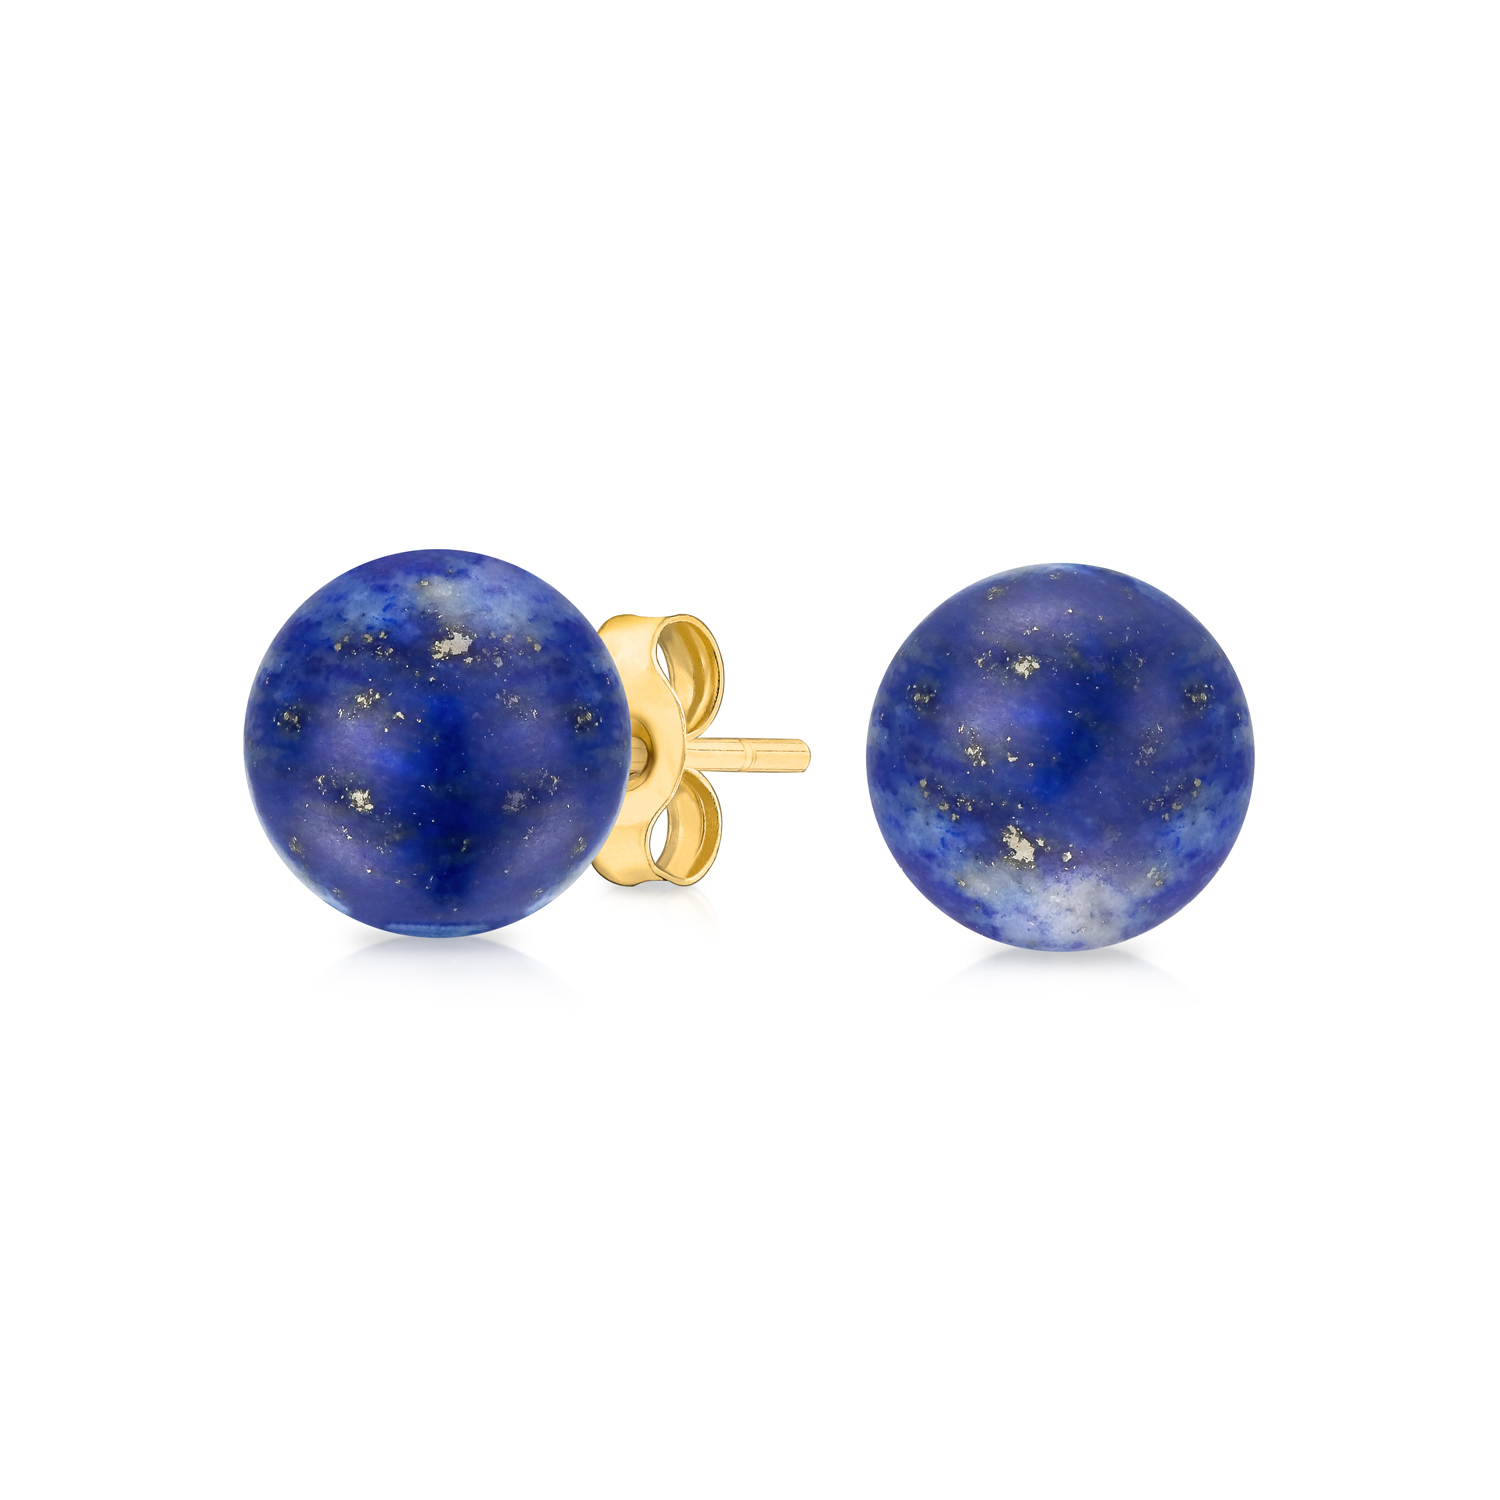 NEW 14K Yellow Gold Natural Lapis 8mm Ball Stud Earrings